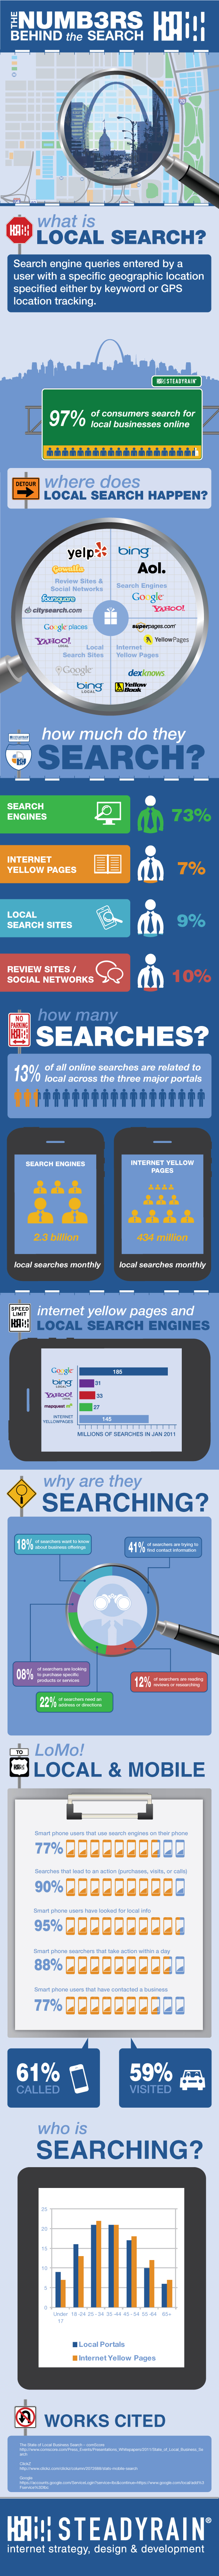 http://amplifylocalmarketing.com/wp-content/uploads/2012/07/Local_Search_InfoGraphic_final.jpg